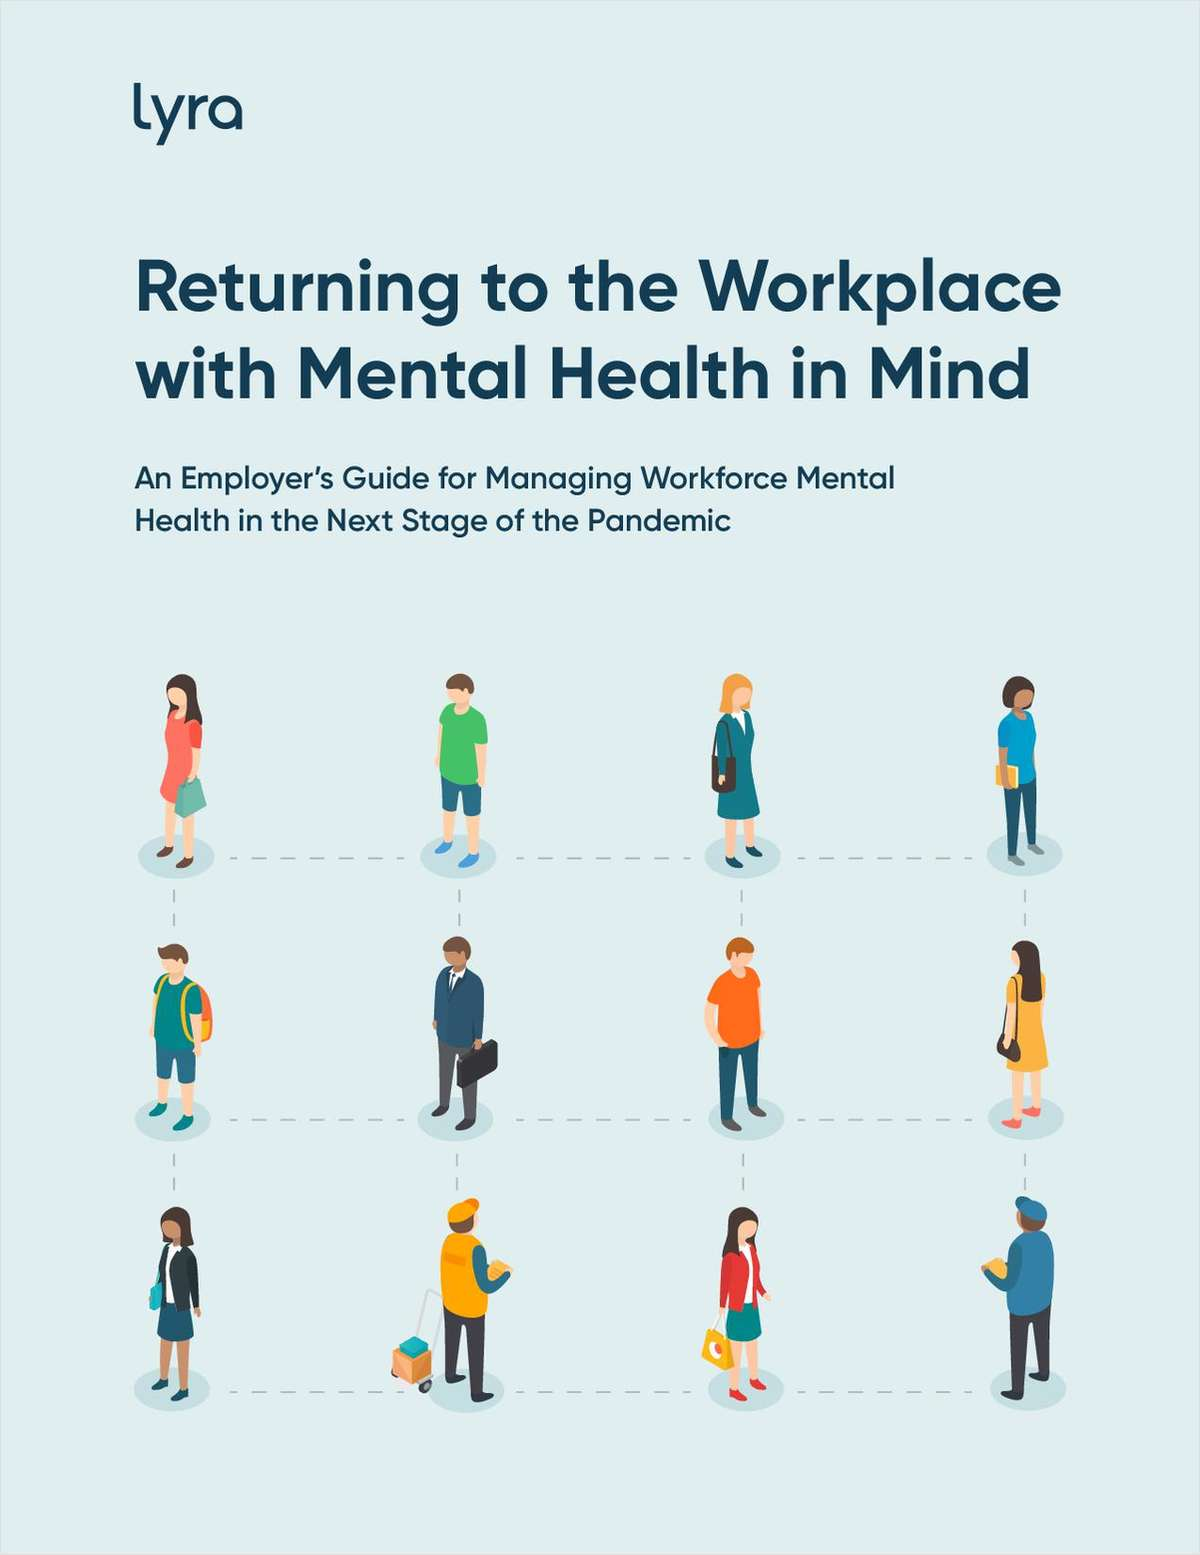 Returning to the Workplace with Mental Health in Mind